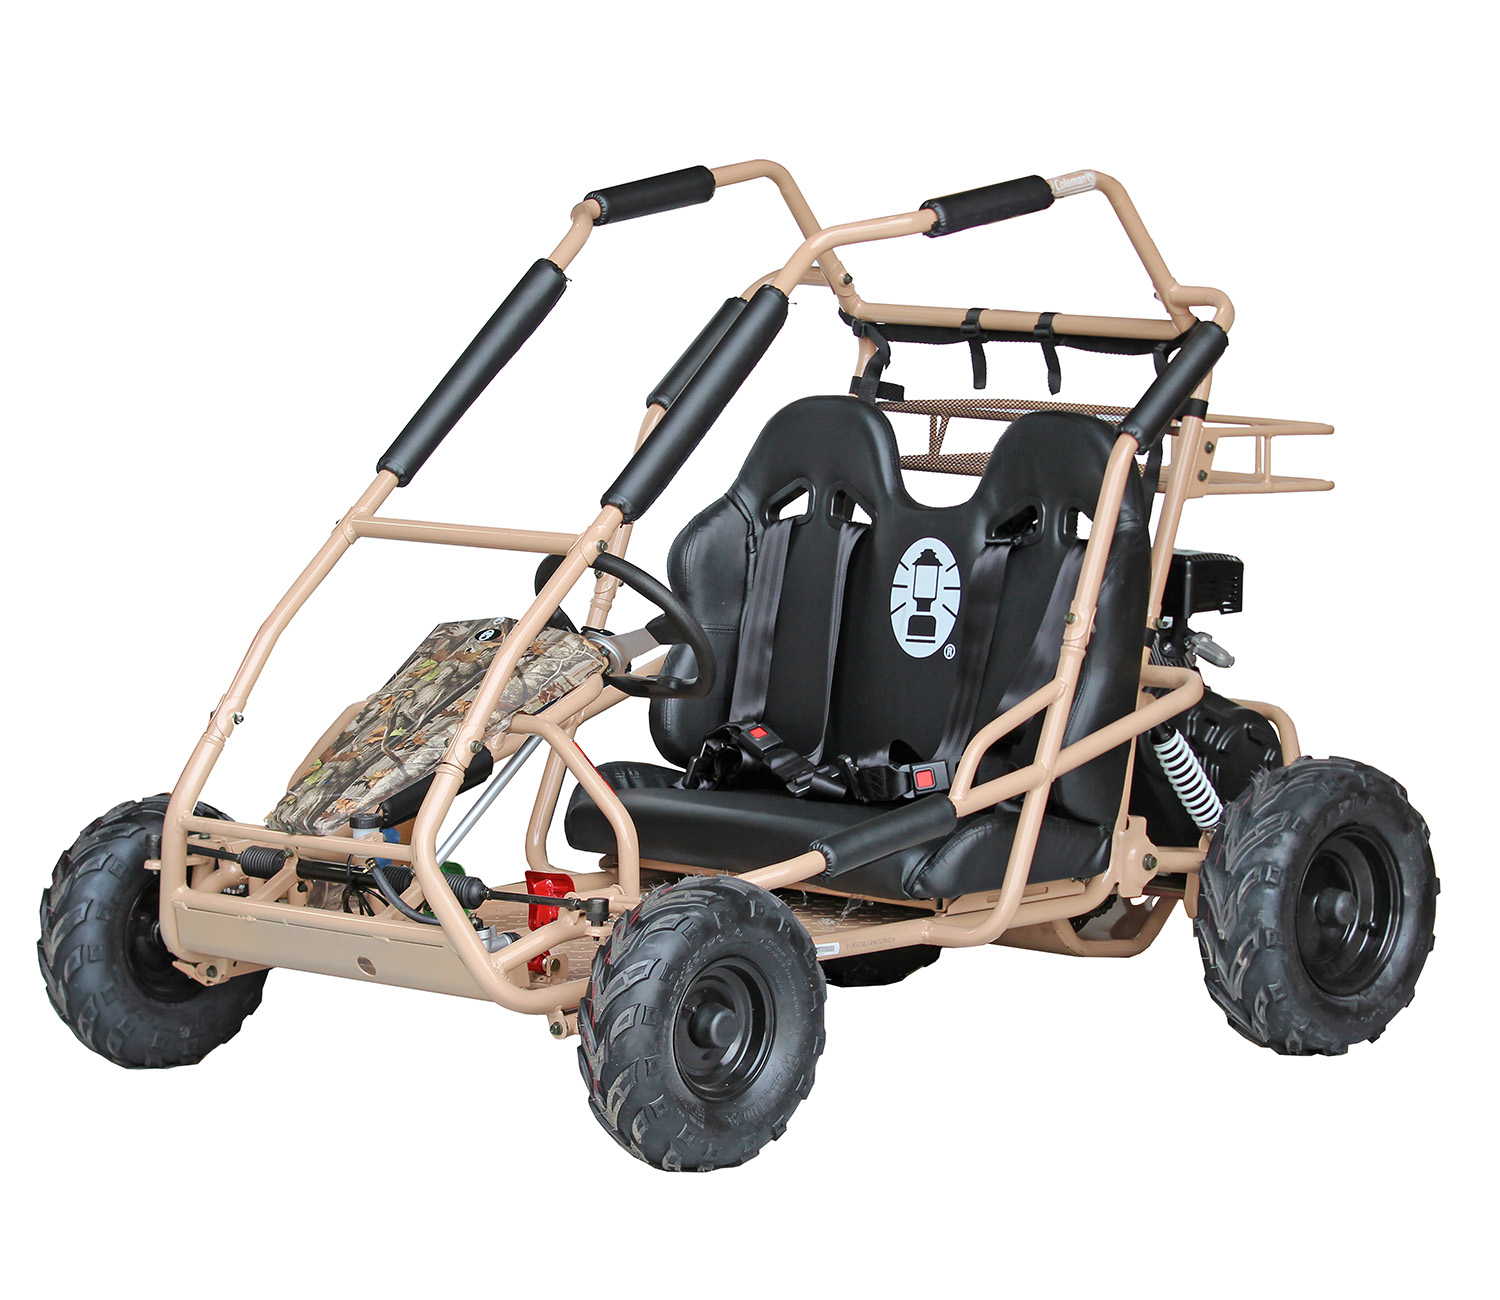 Run with a friend in this camo kart. Shred trails all while being invisible! Sort of...